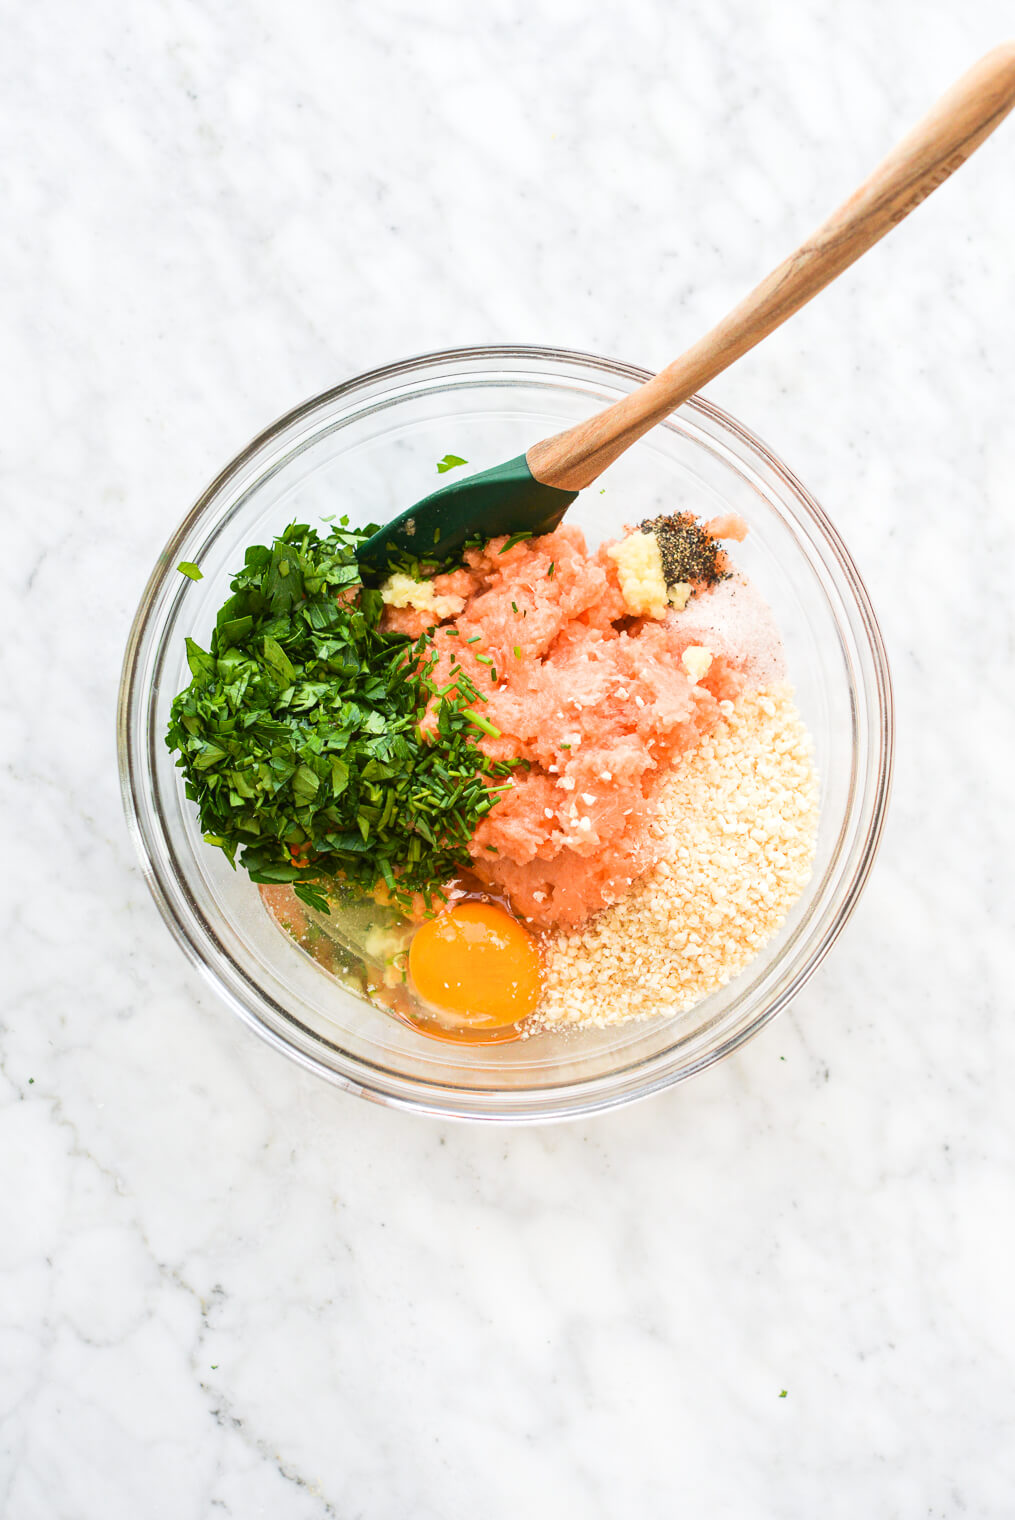 a large glass bowl with food processed salmon, breadcrumbs, an egg, herbs, and some seasonings